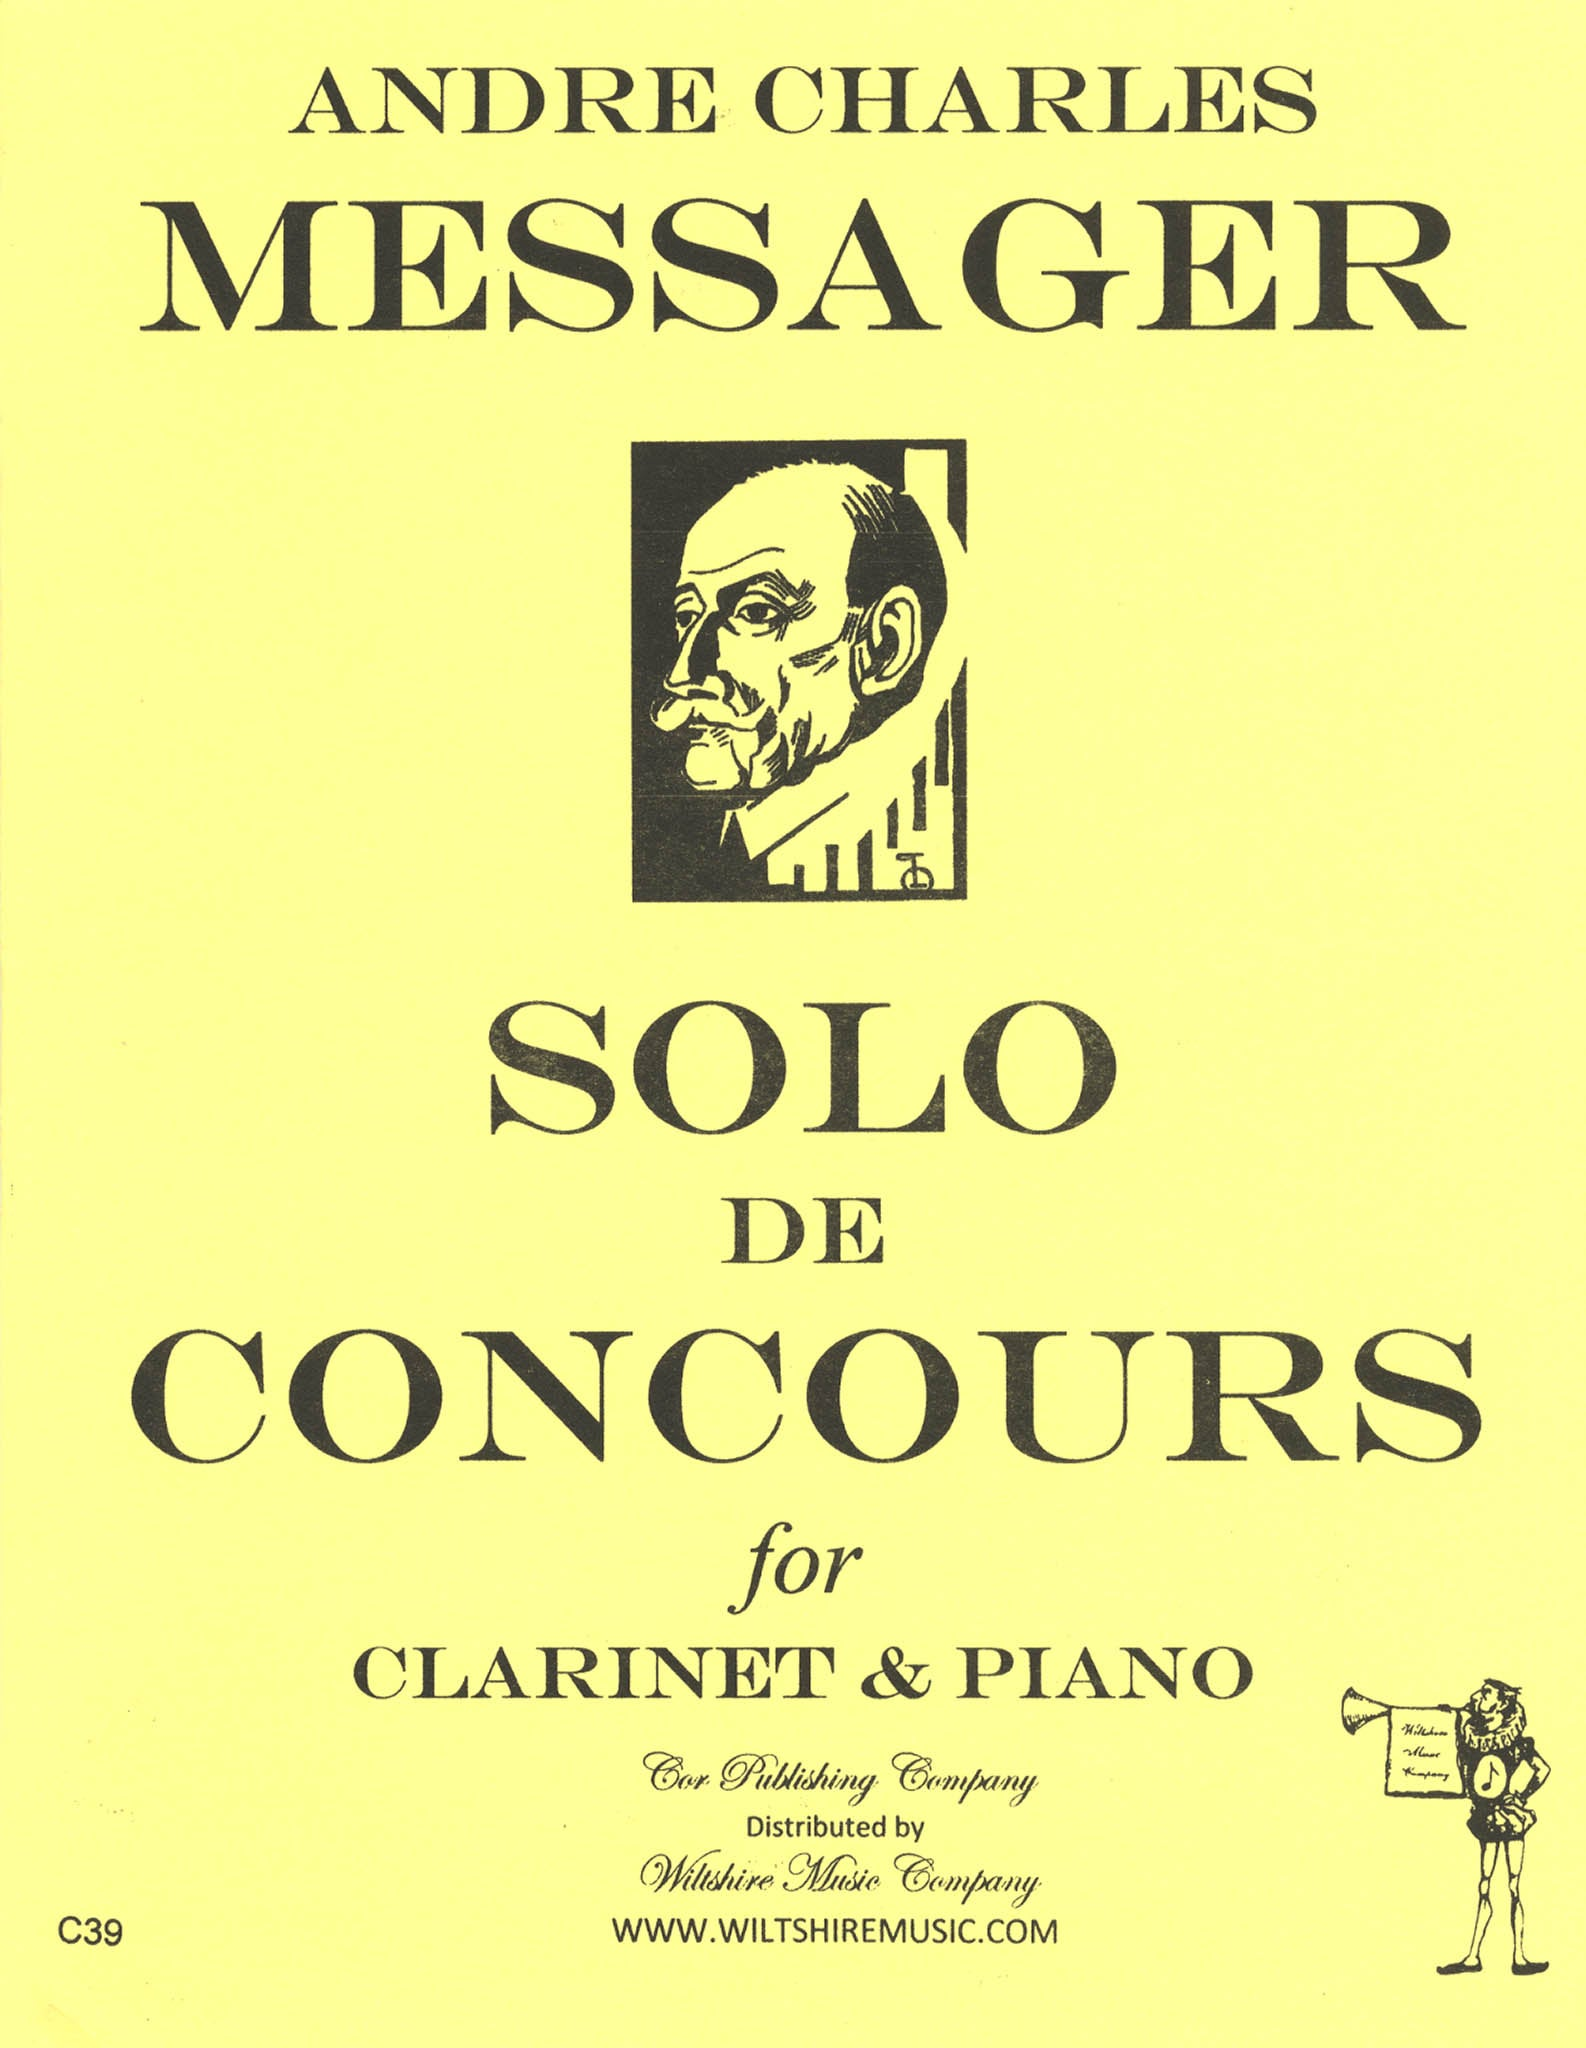 Messager Solo de concours for Clarinet & Piano Cover